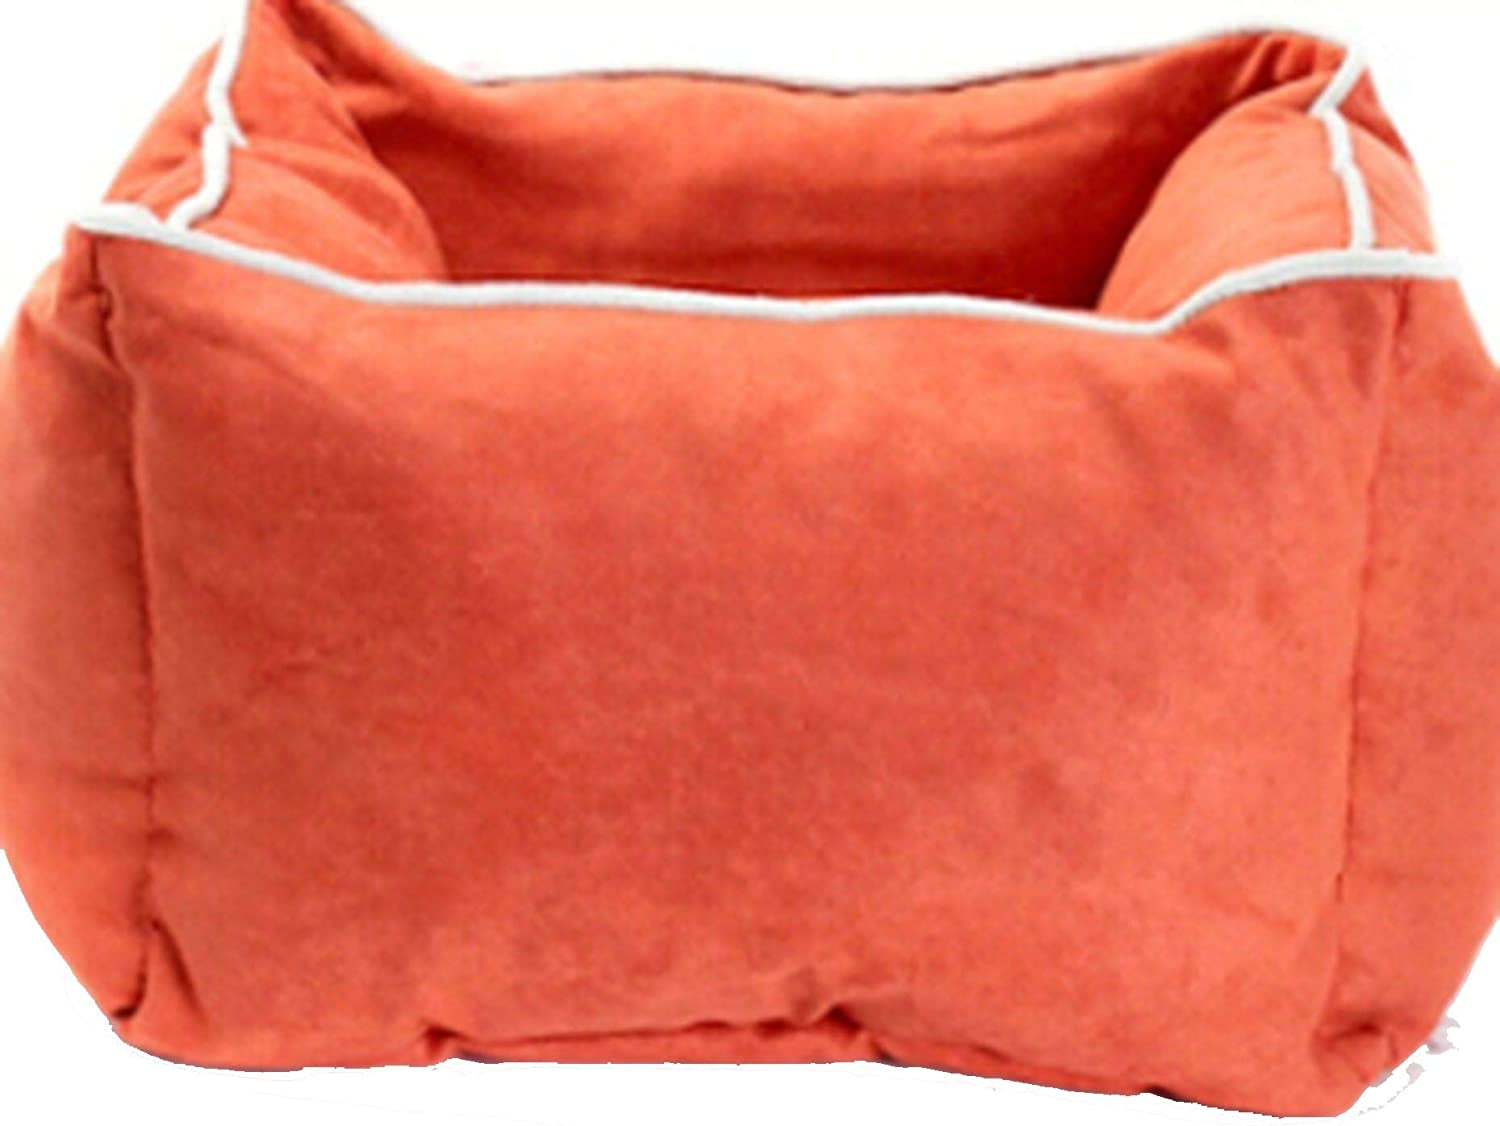 Pet Products Supplies Cat Cushion Bed House Bed for Cat Sleeping Bag Deep Bed Kennel Sofa Warm Soft Cozy,orange